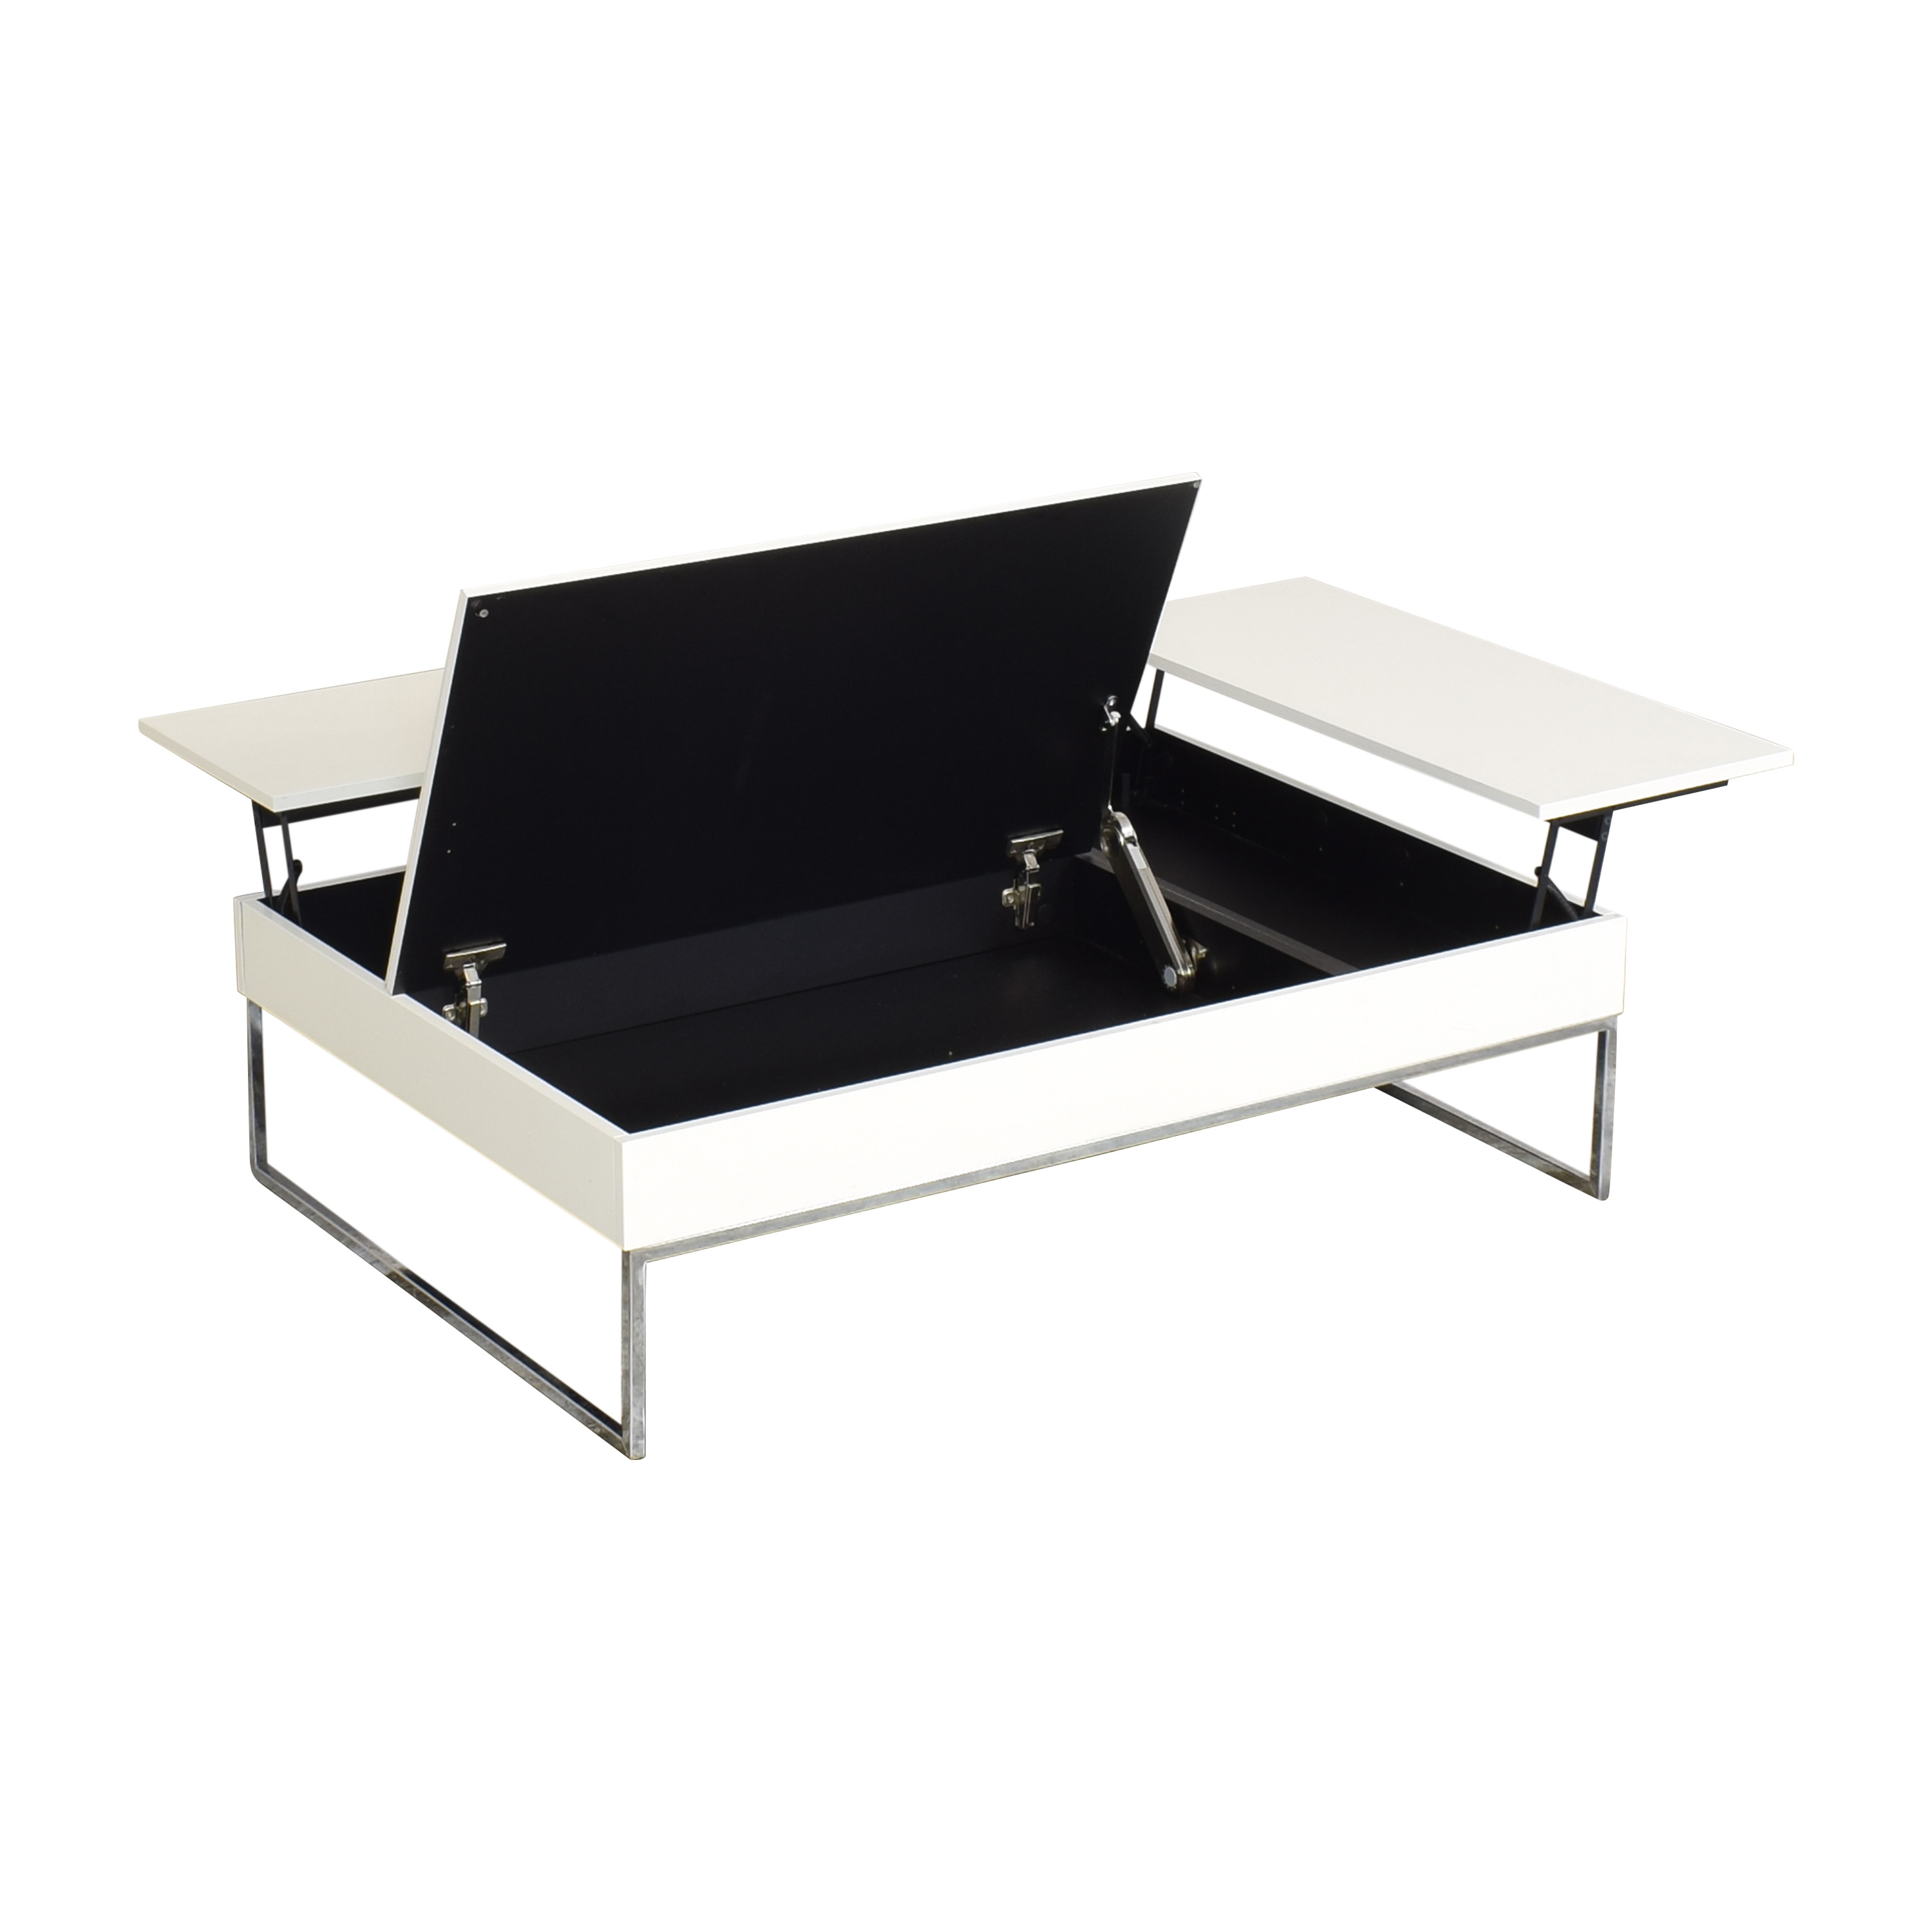 BoConcept Bo Concept Chiva Coffee Table Functional Coffee Table with Storage